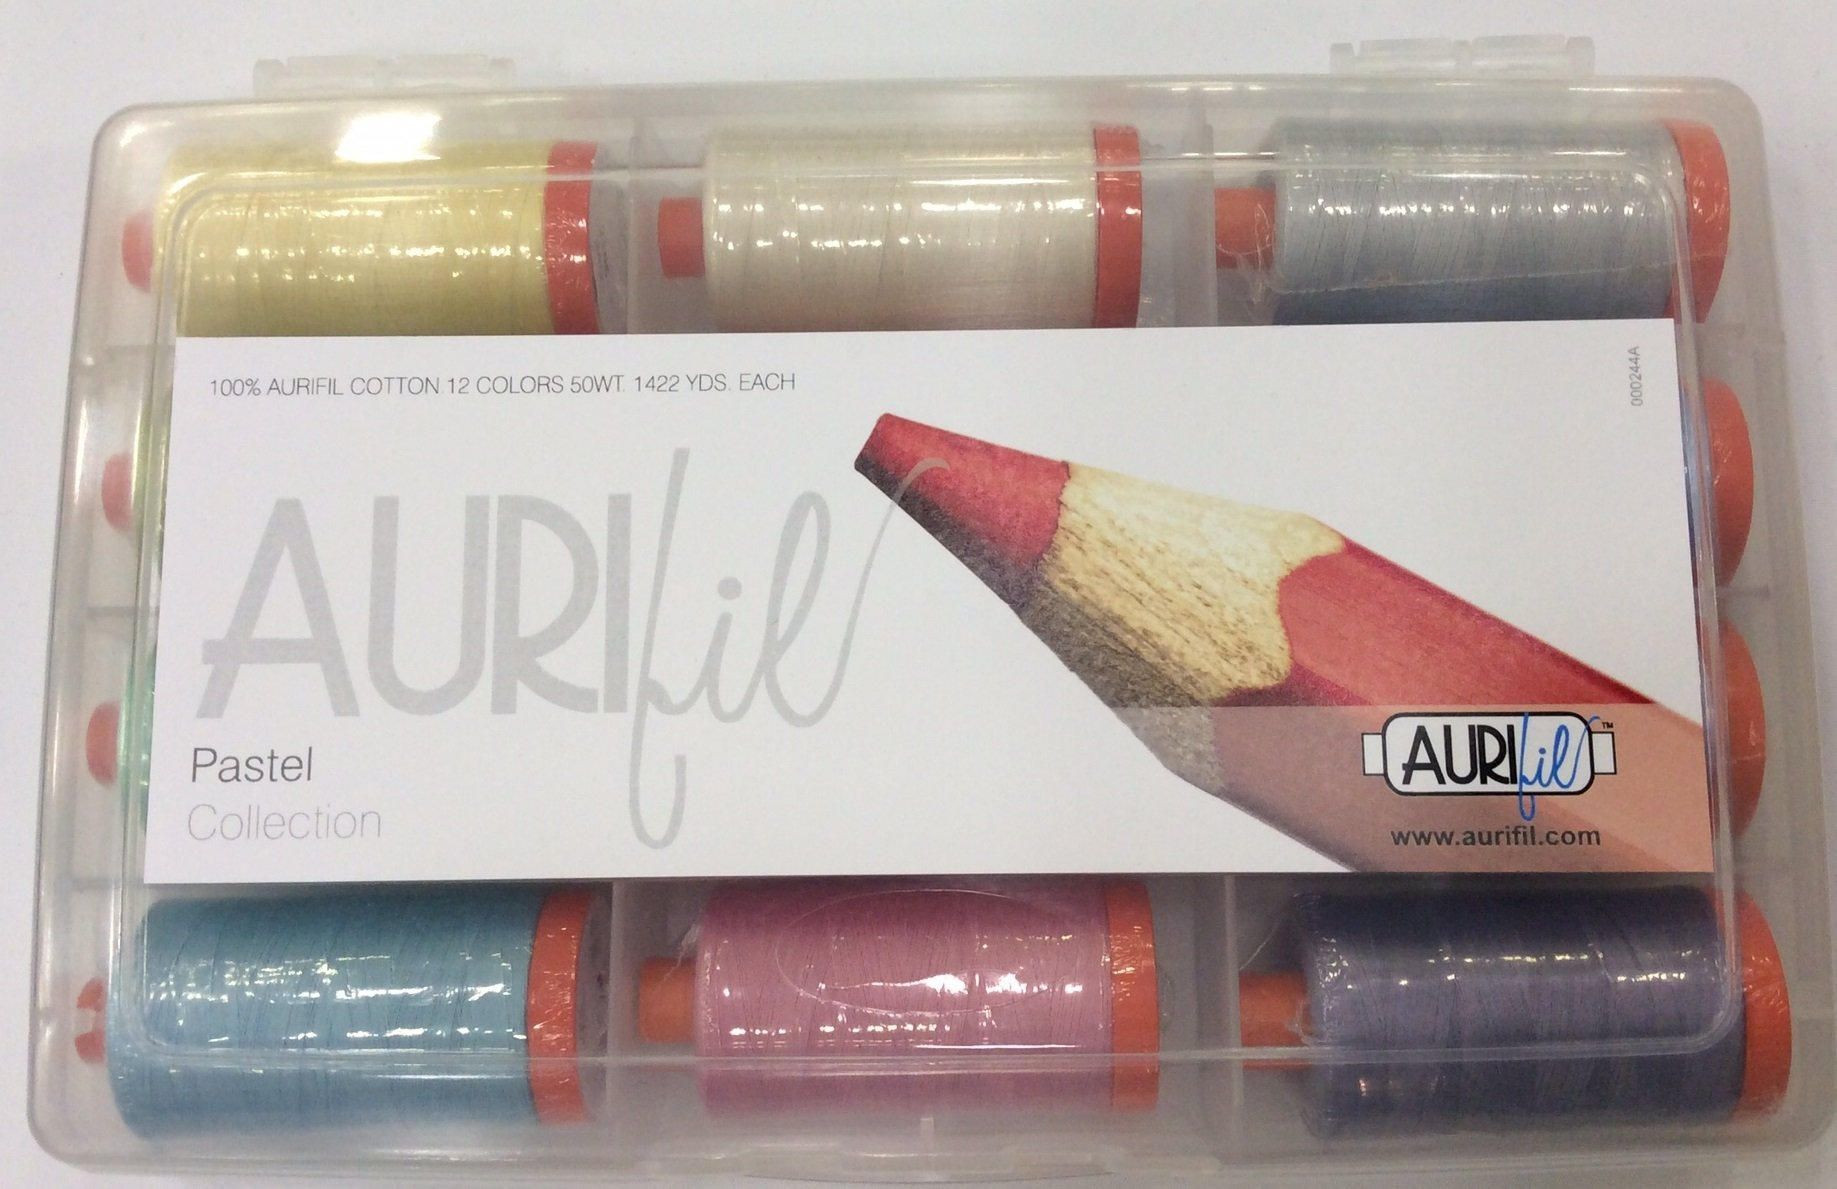 Aurifil's Pastel Collection